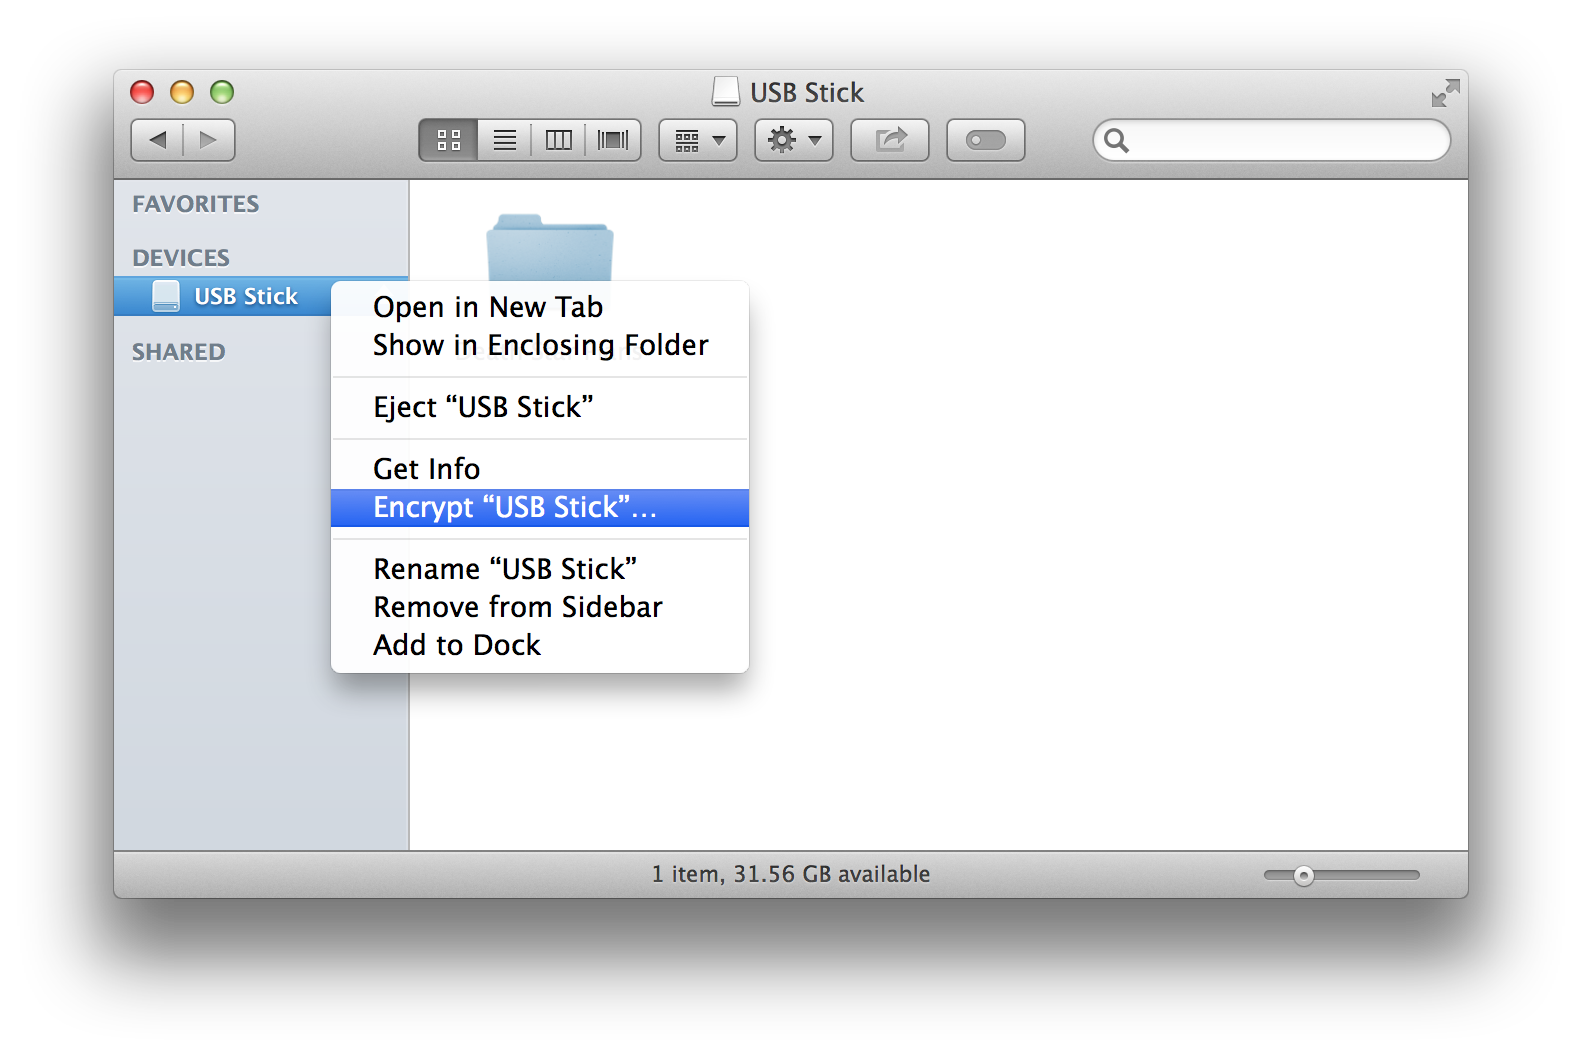 Encrypting via the Finder